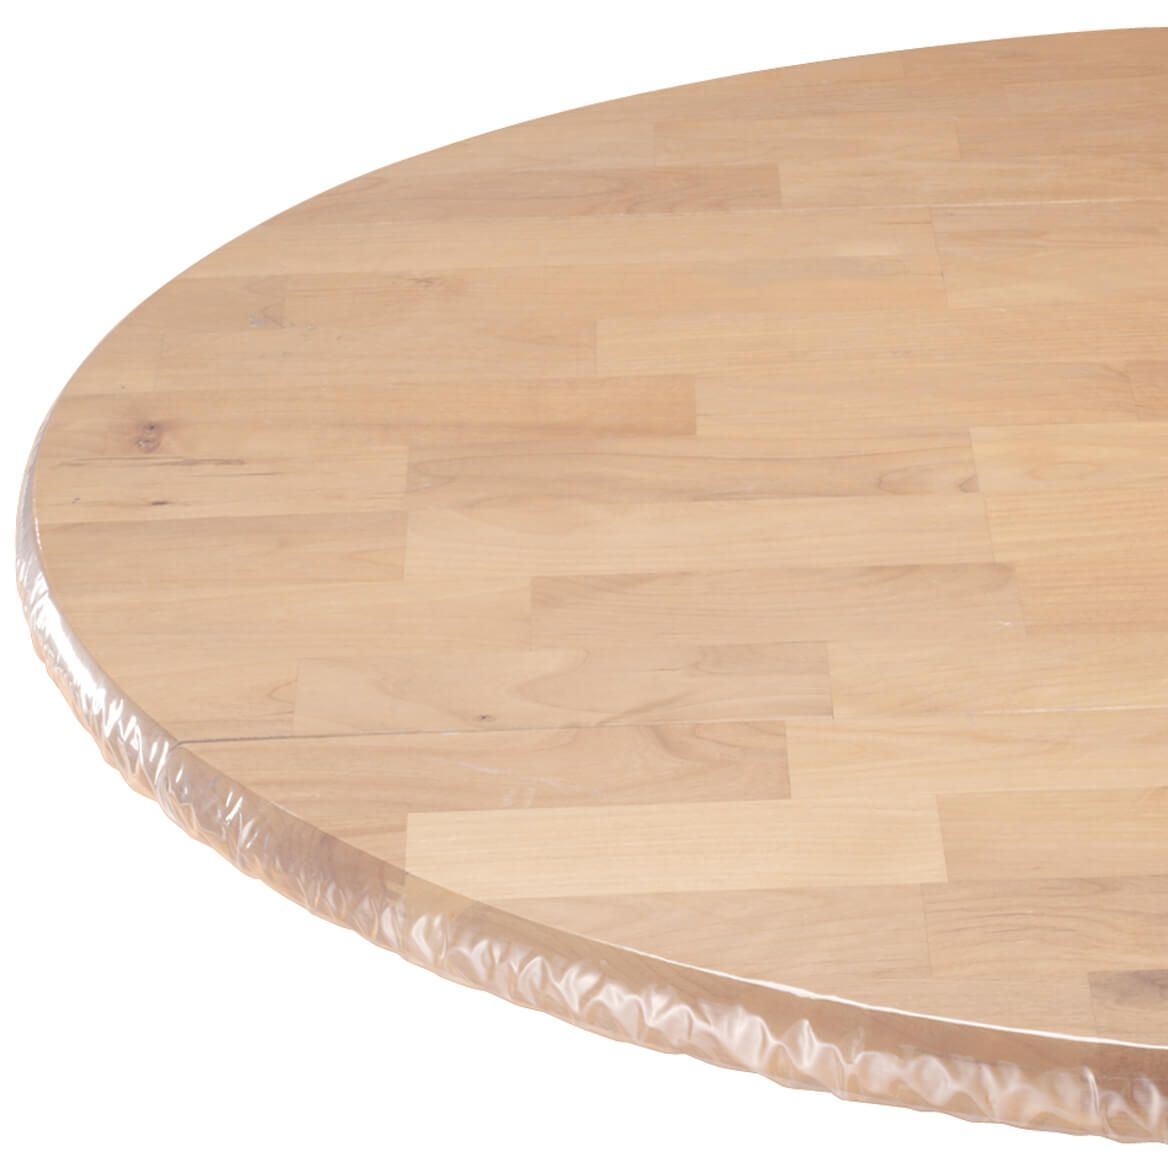 Walter Drake S Clear Elasticized Table Cover Provides A Snug Fit